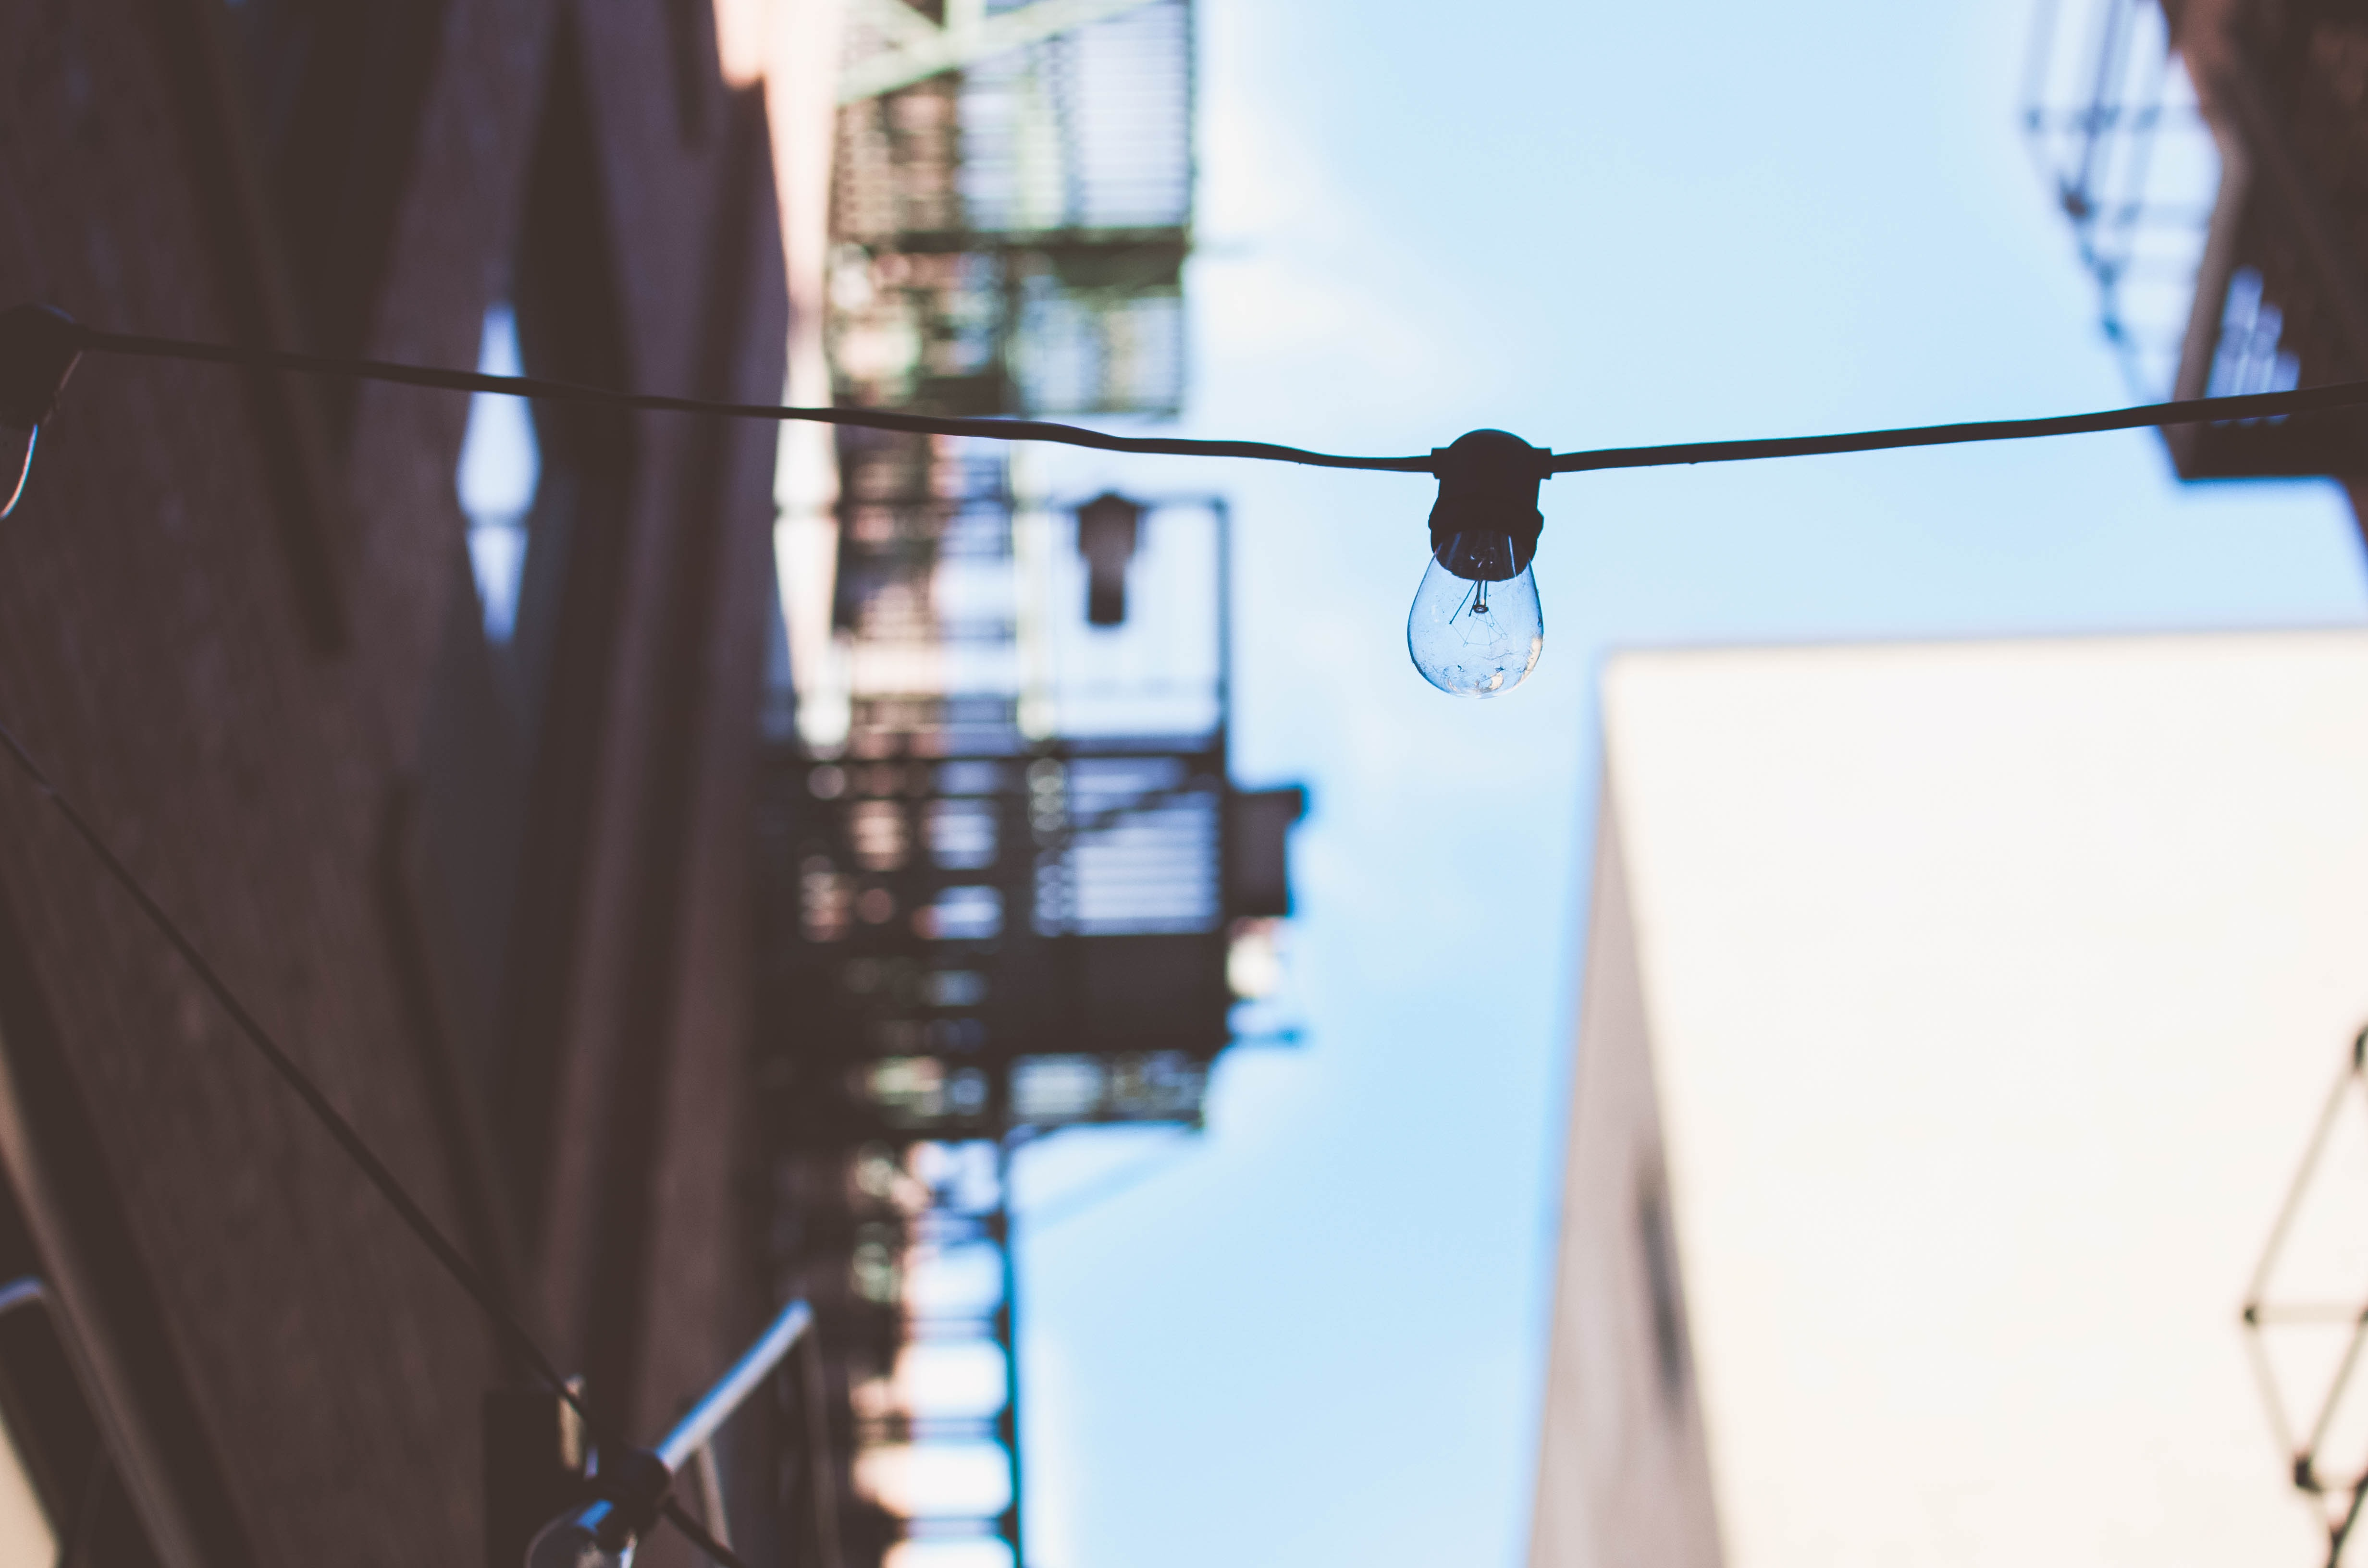 A lightbulb hangs on a cable running between two buildings against a blue sky